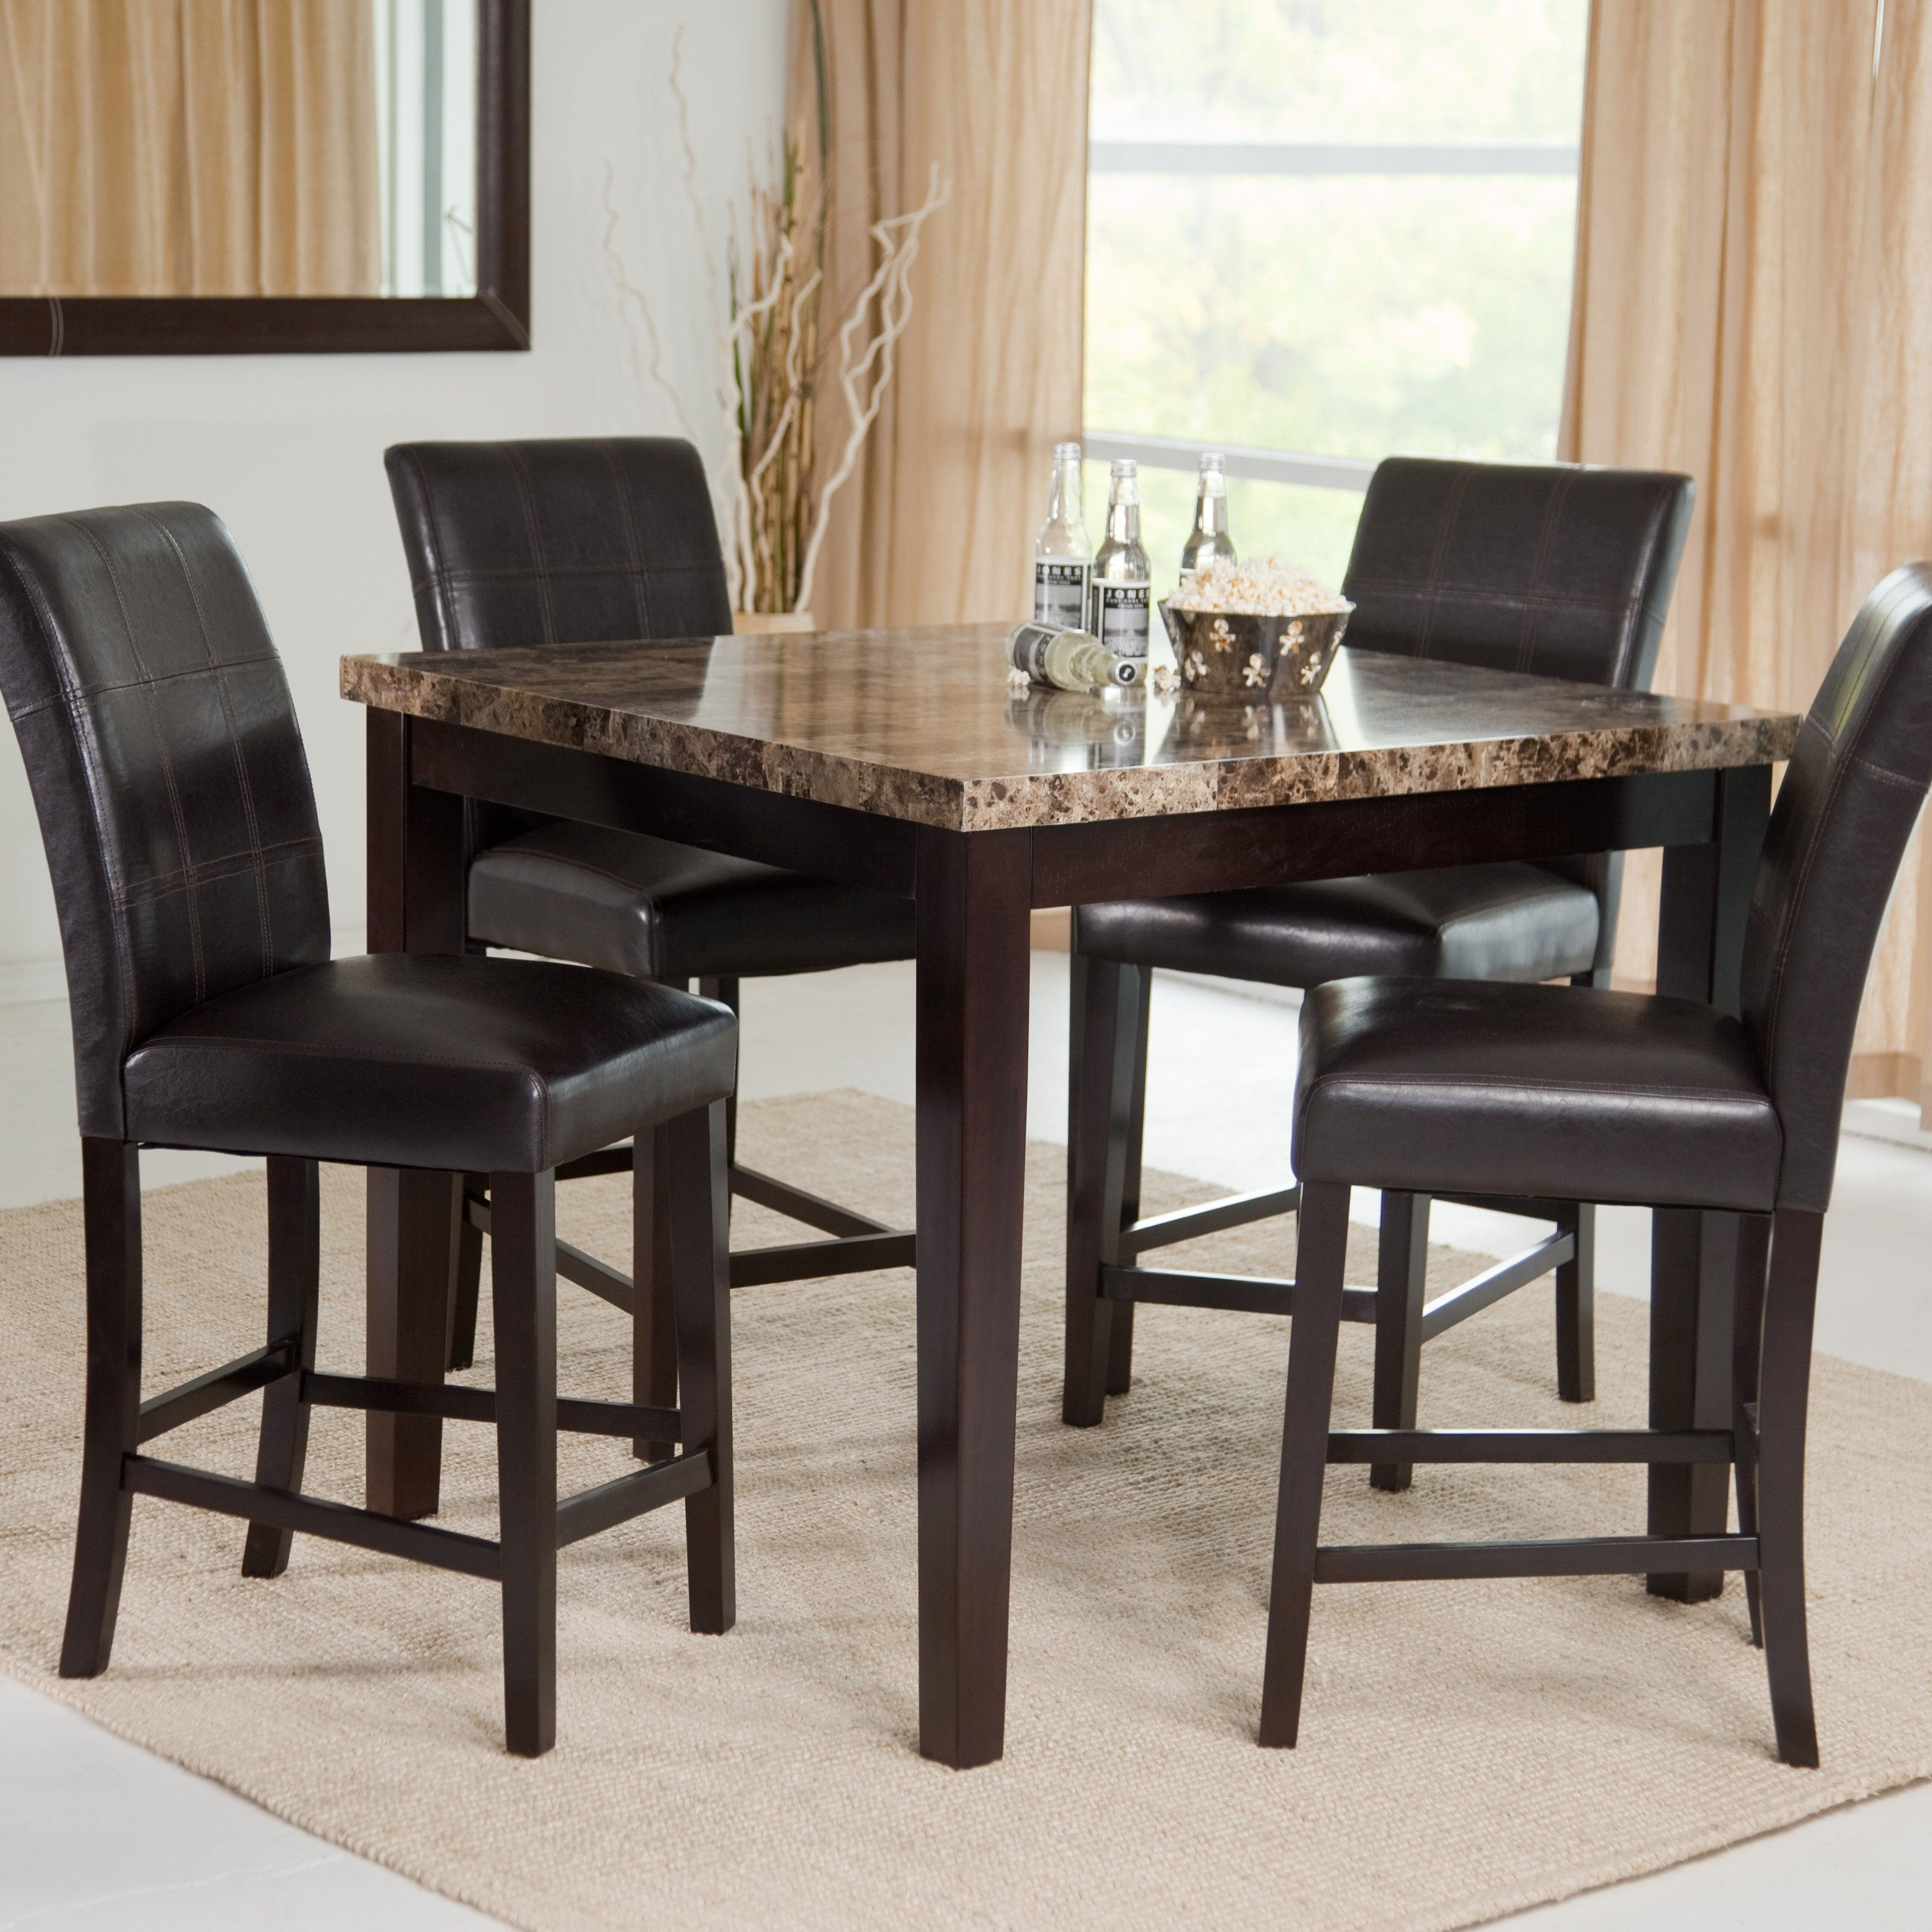 Have To Have It. Palazzo 5 Piece Counter Height Dining Set – $449.98 Inside Most Current Palazzo 6 Piece Rectangle Dining Sets With Joss Side Chairs (Photo 13 of 20)